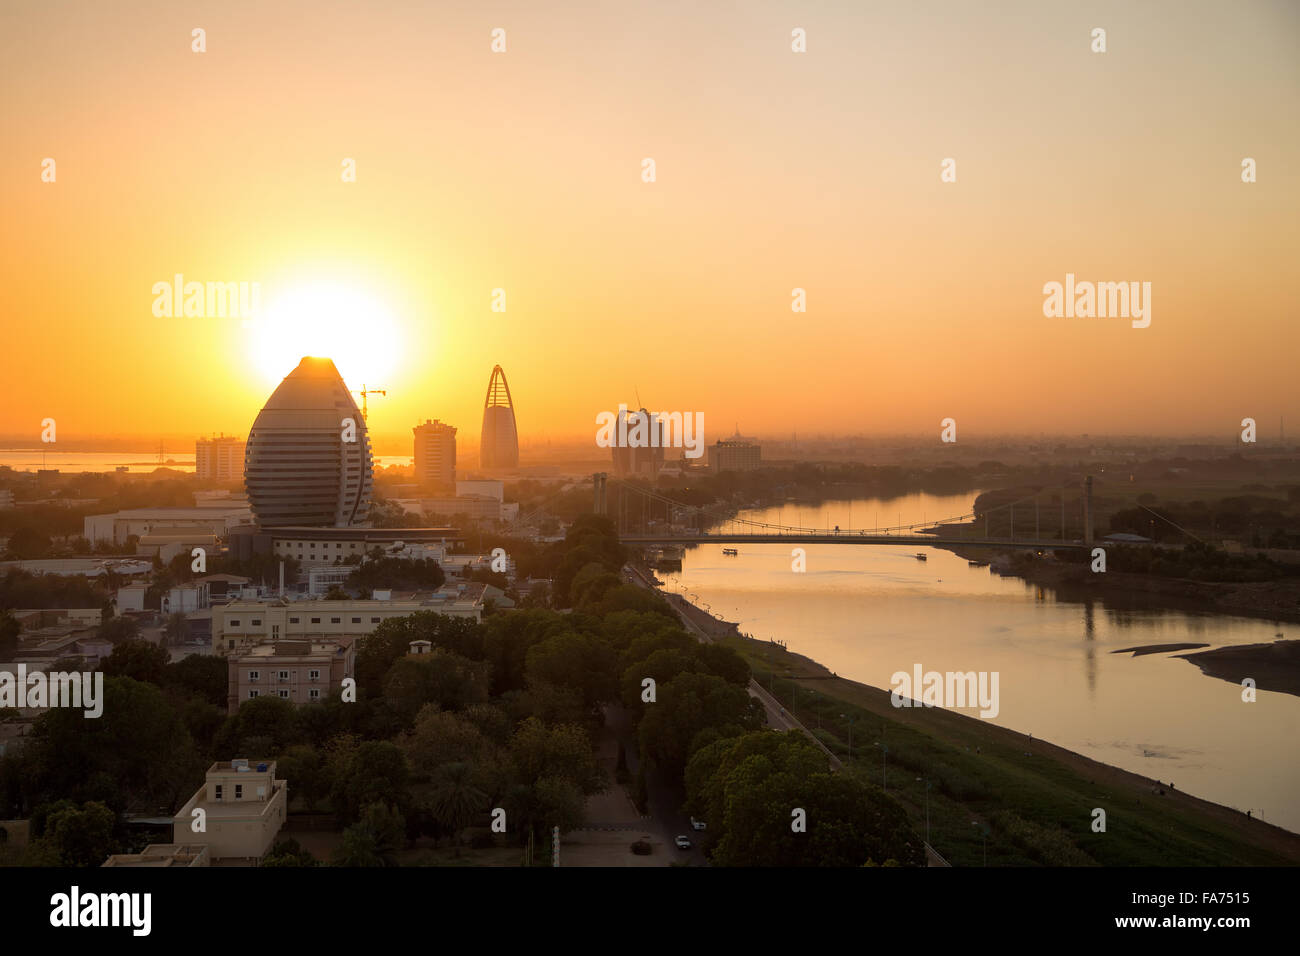 A sunset view of river Nile in Khartoum, South Sudan - Stock Image